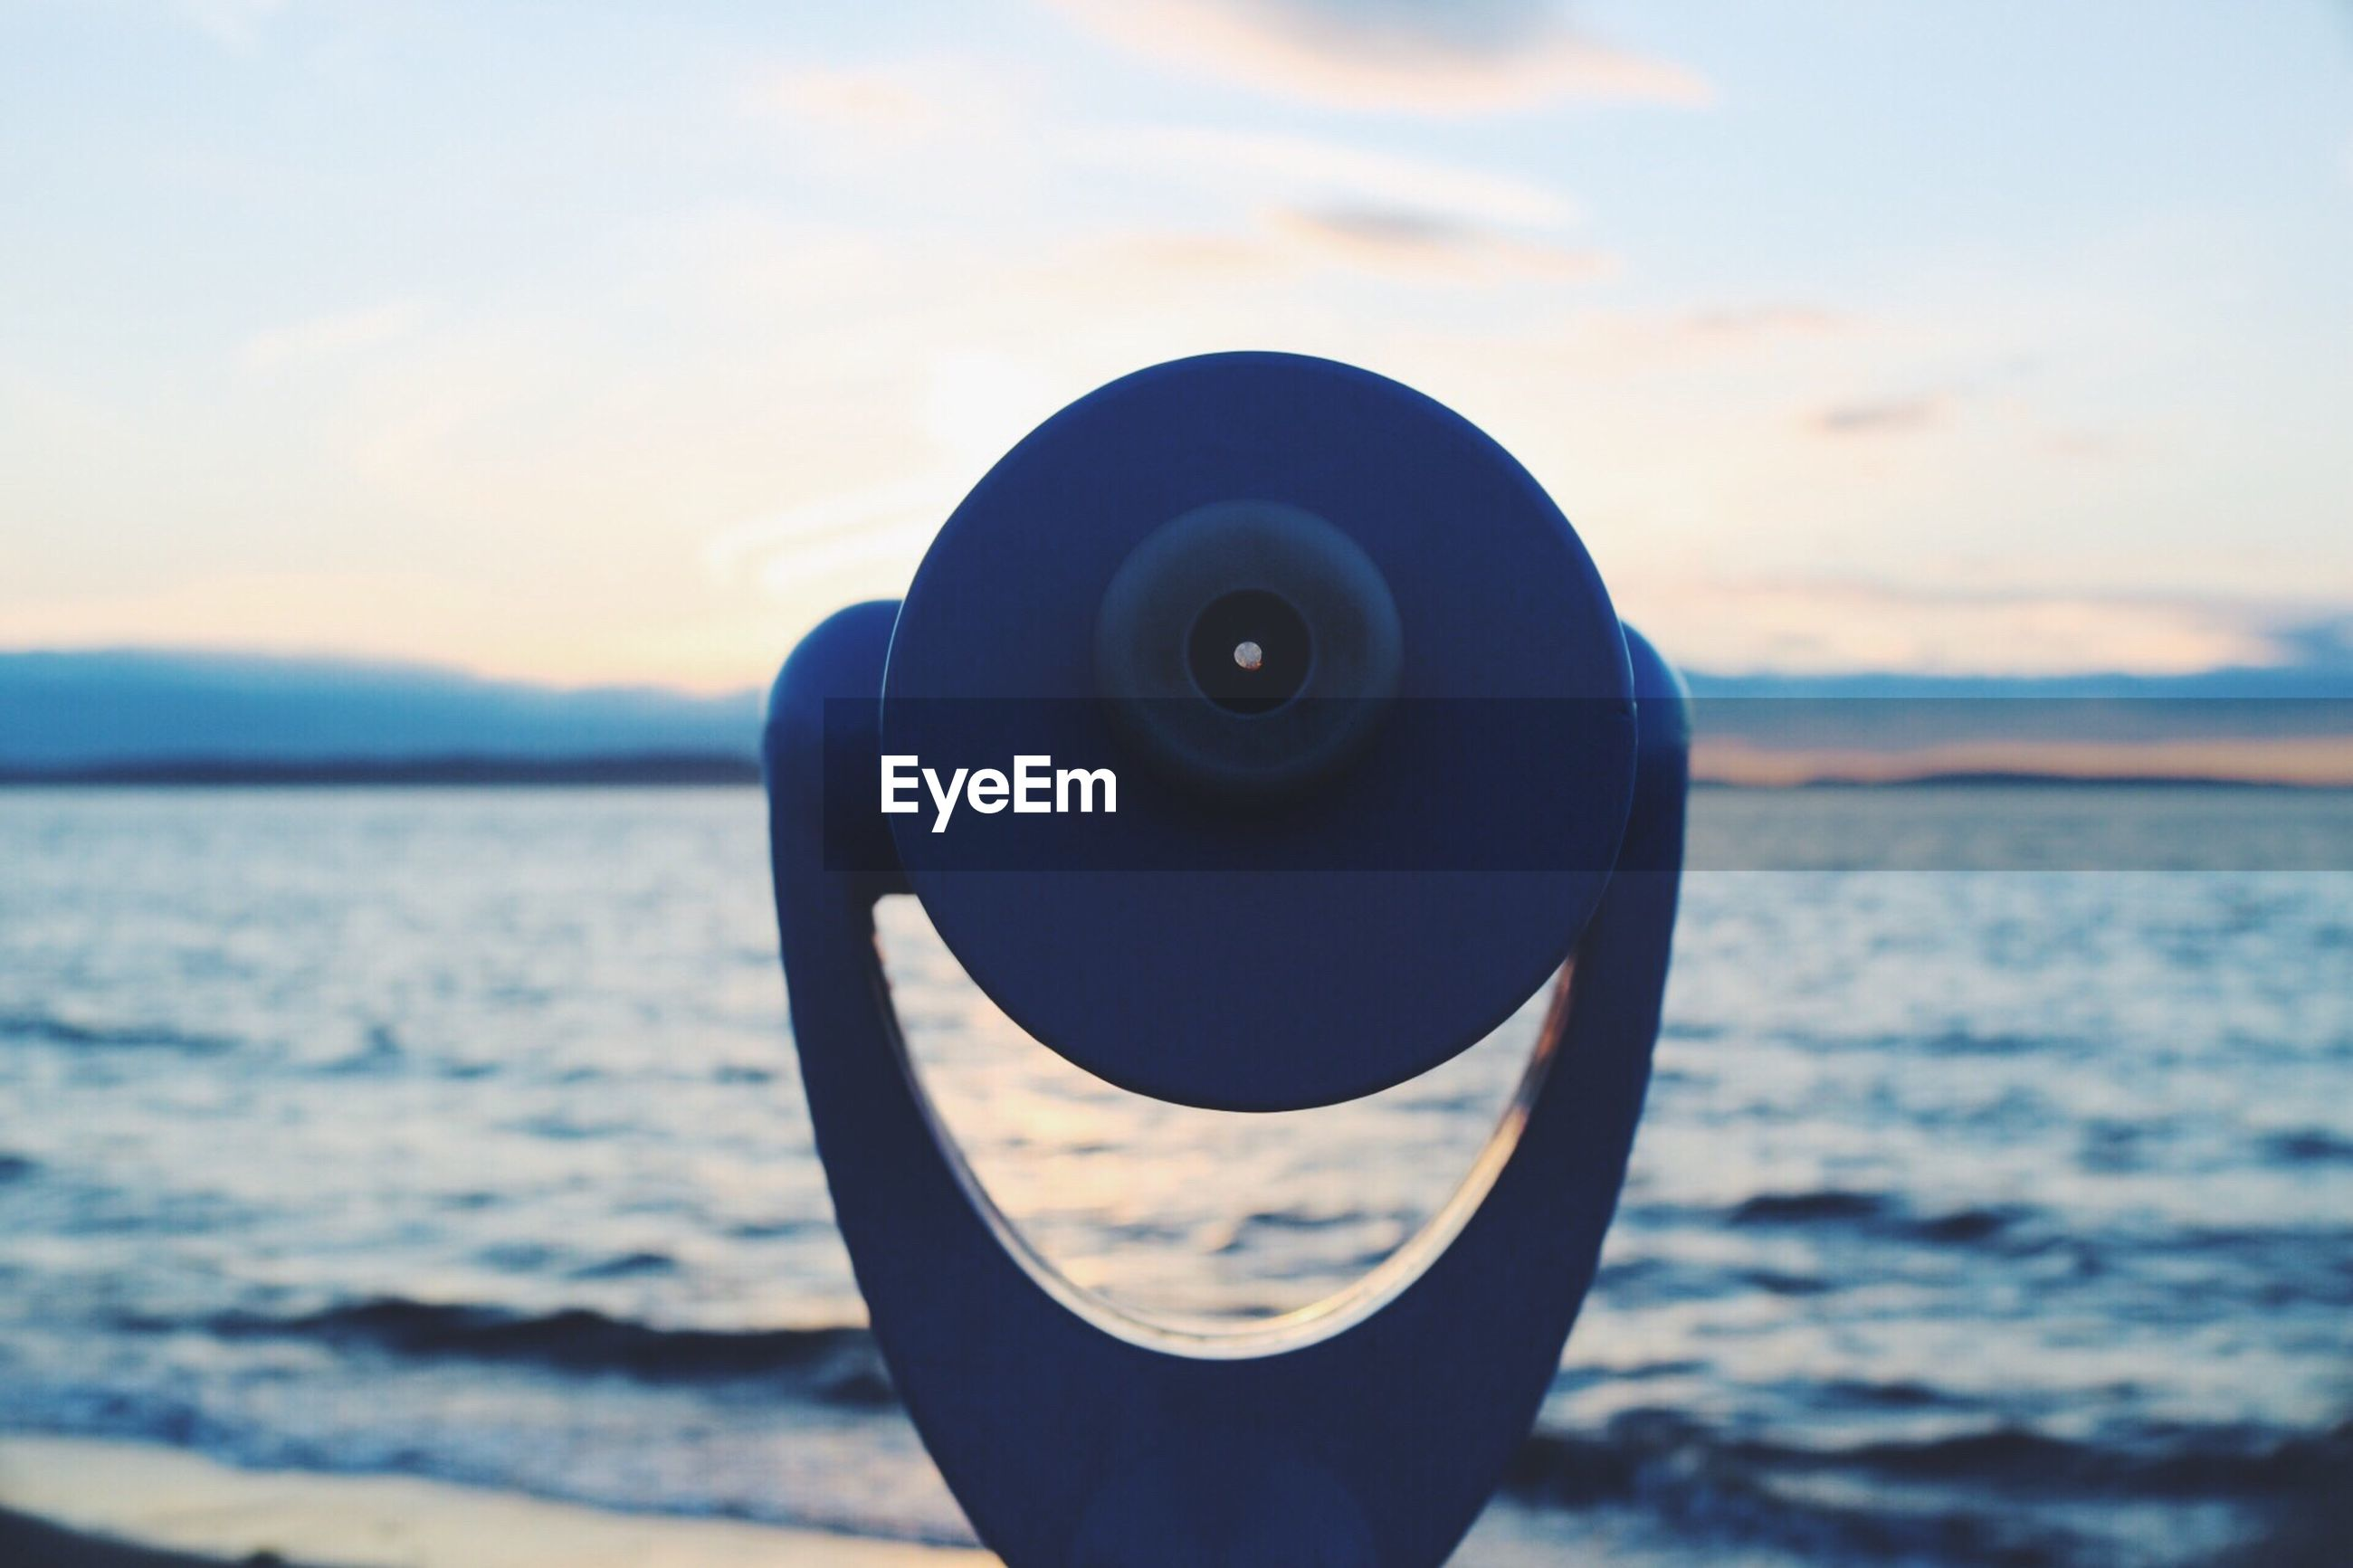 CLOSE-UP OF COIN-OPERATED BINOCULARS AGAINST SEA DURING SUNSET